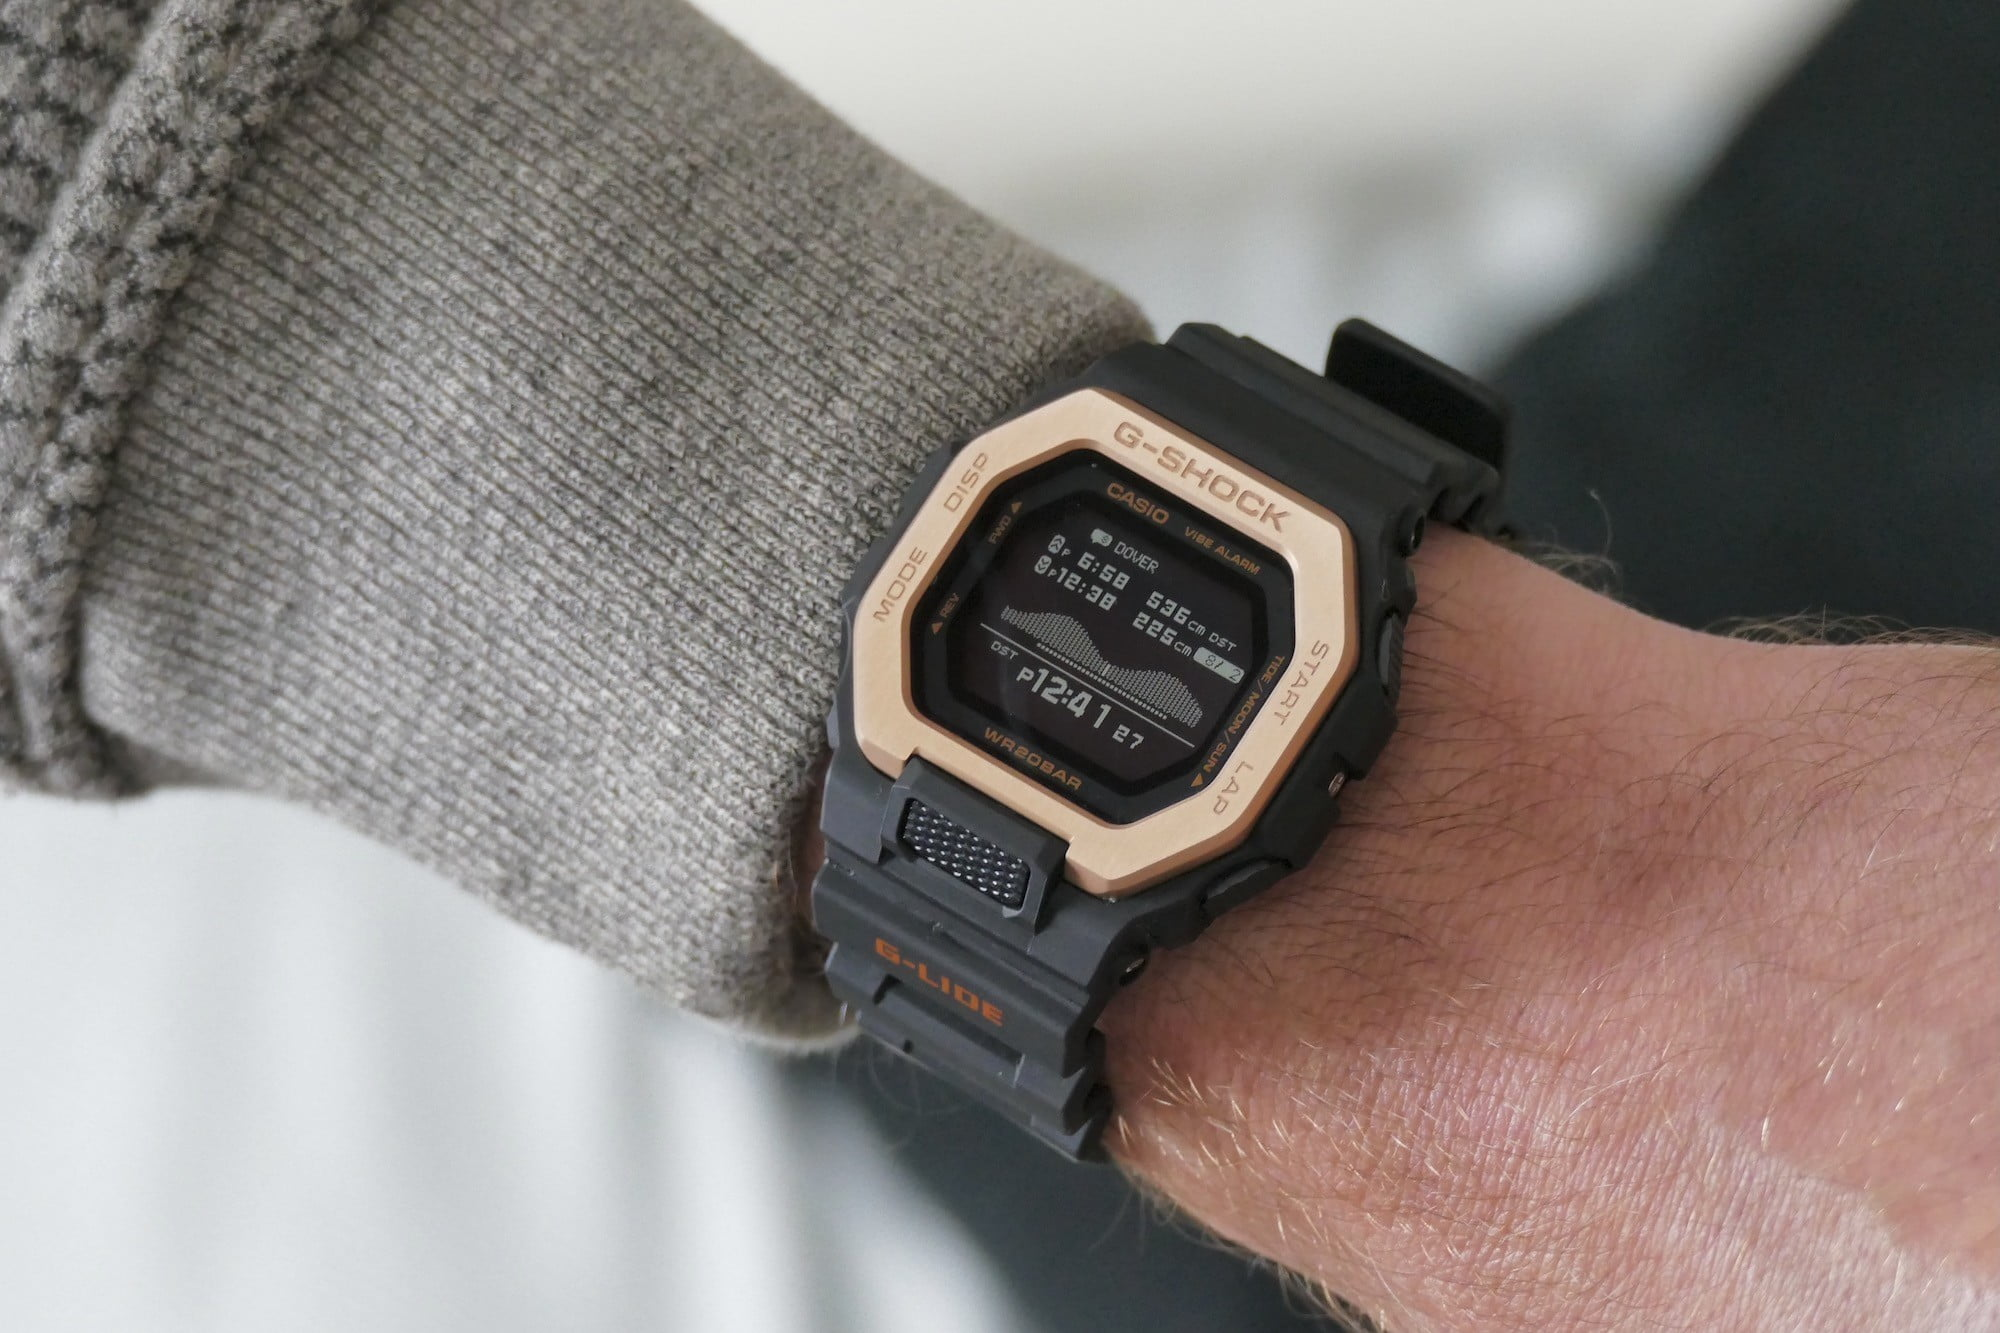 The G Shock GBX-100NS's tide and time screen.